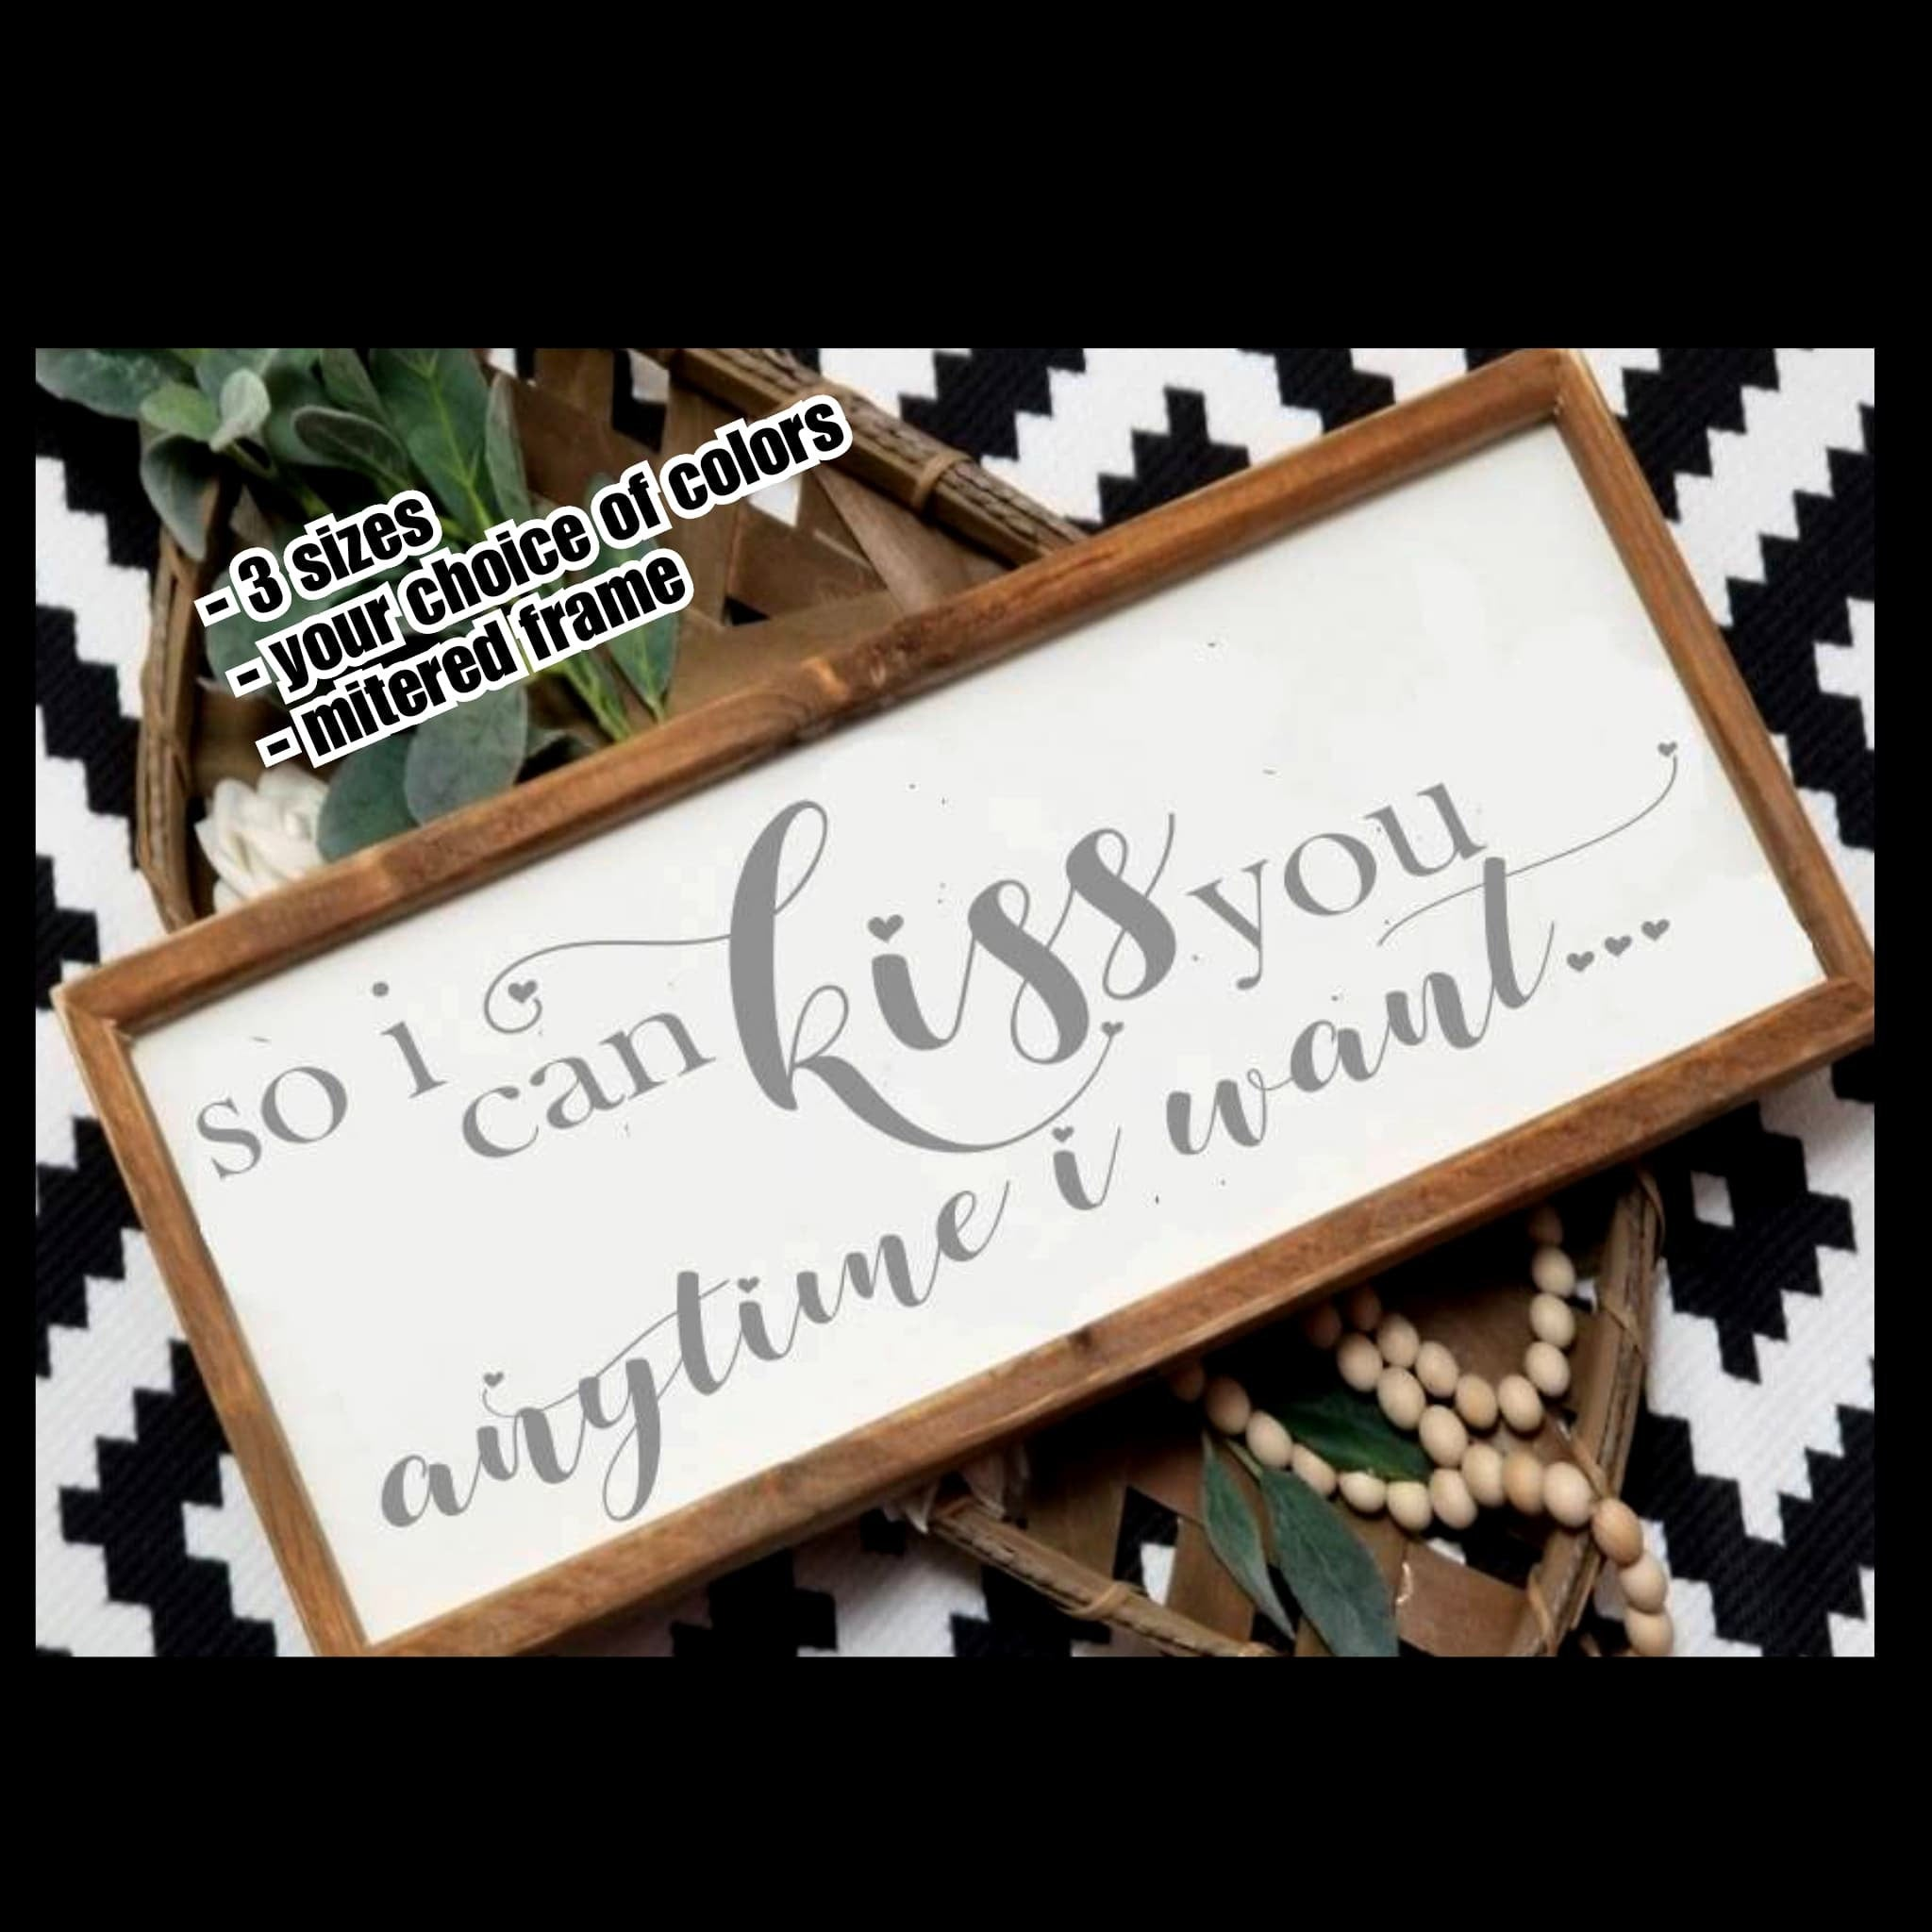 So I can kiss you anytime I want, sweet home Alabama, farmhouse sign, master bedroom sign, over the bed sign, , wedding gift